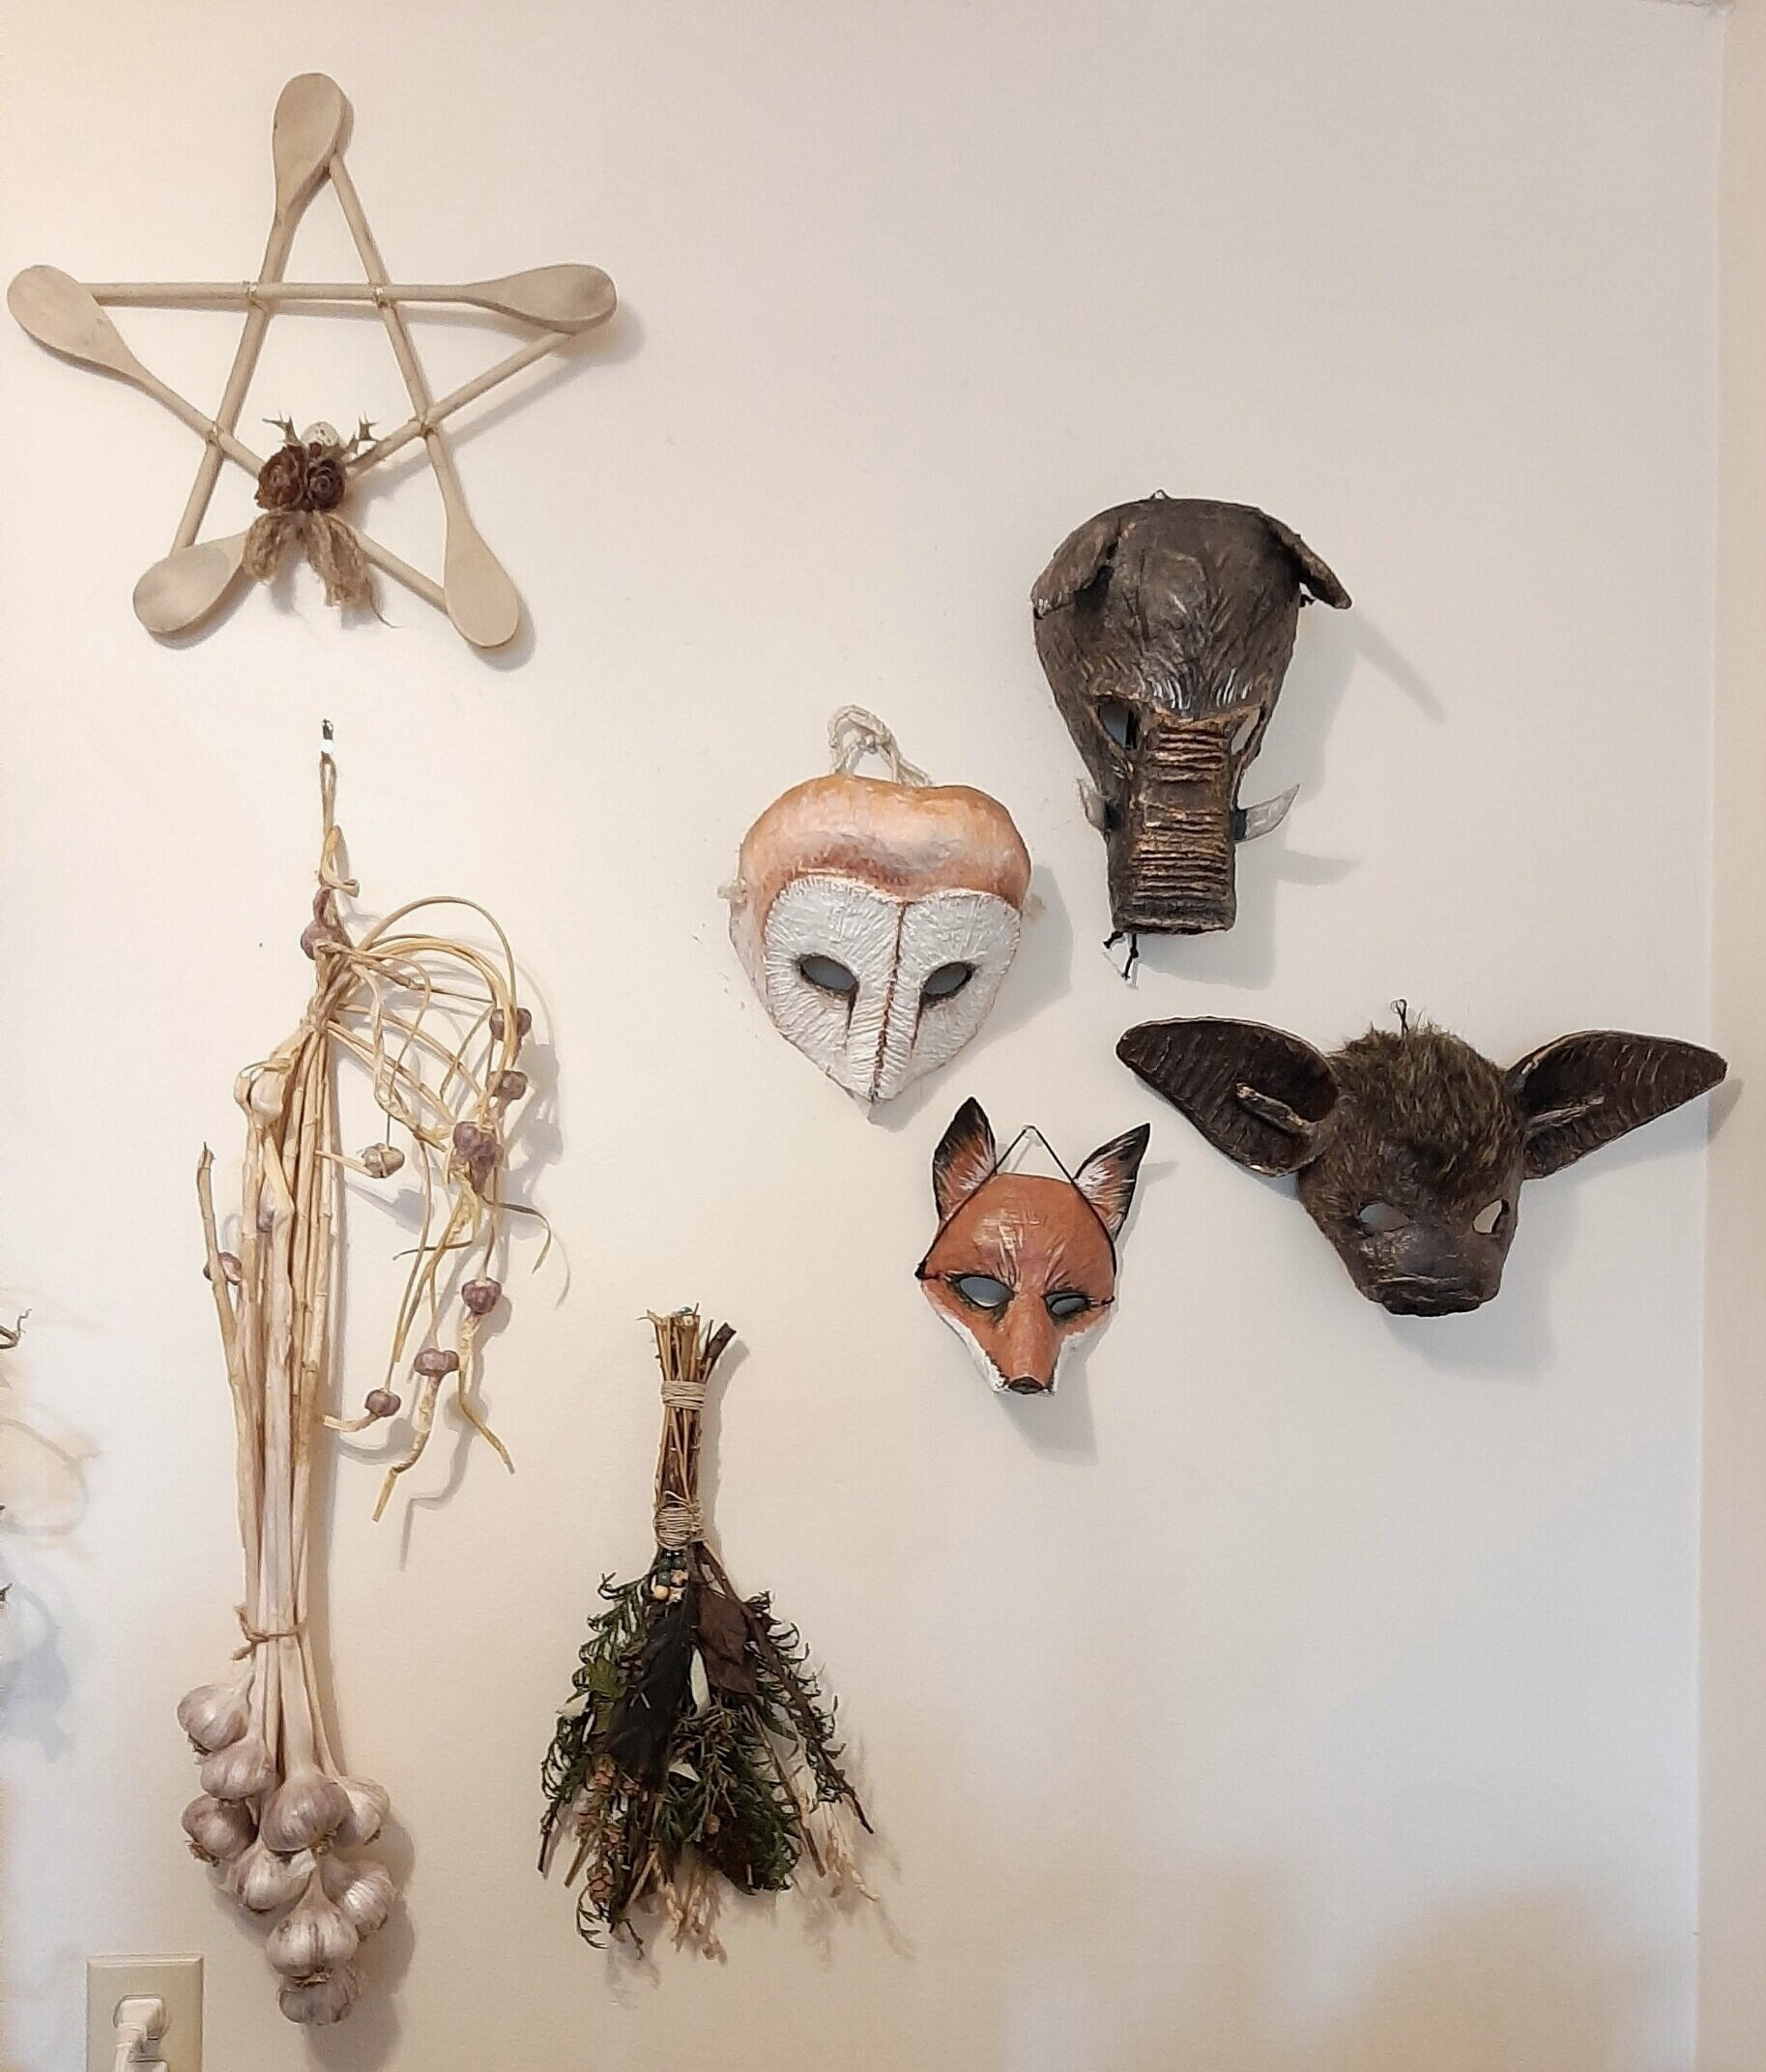 Joining the masks on the wall